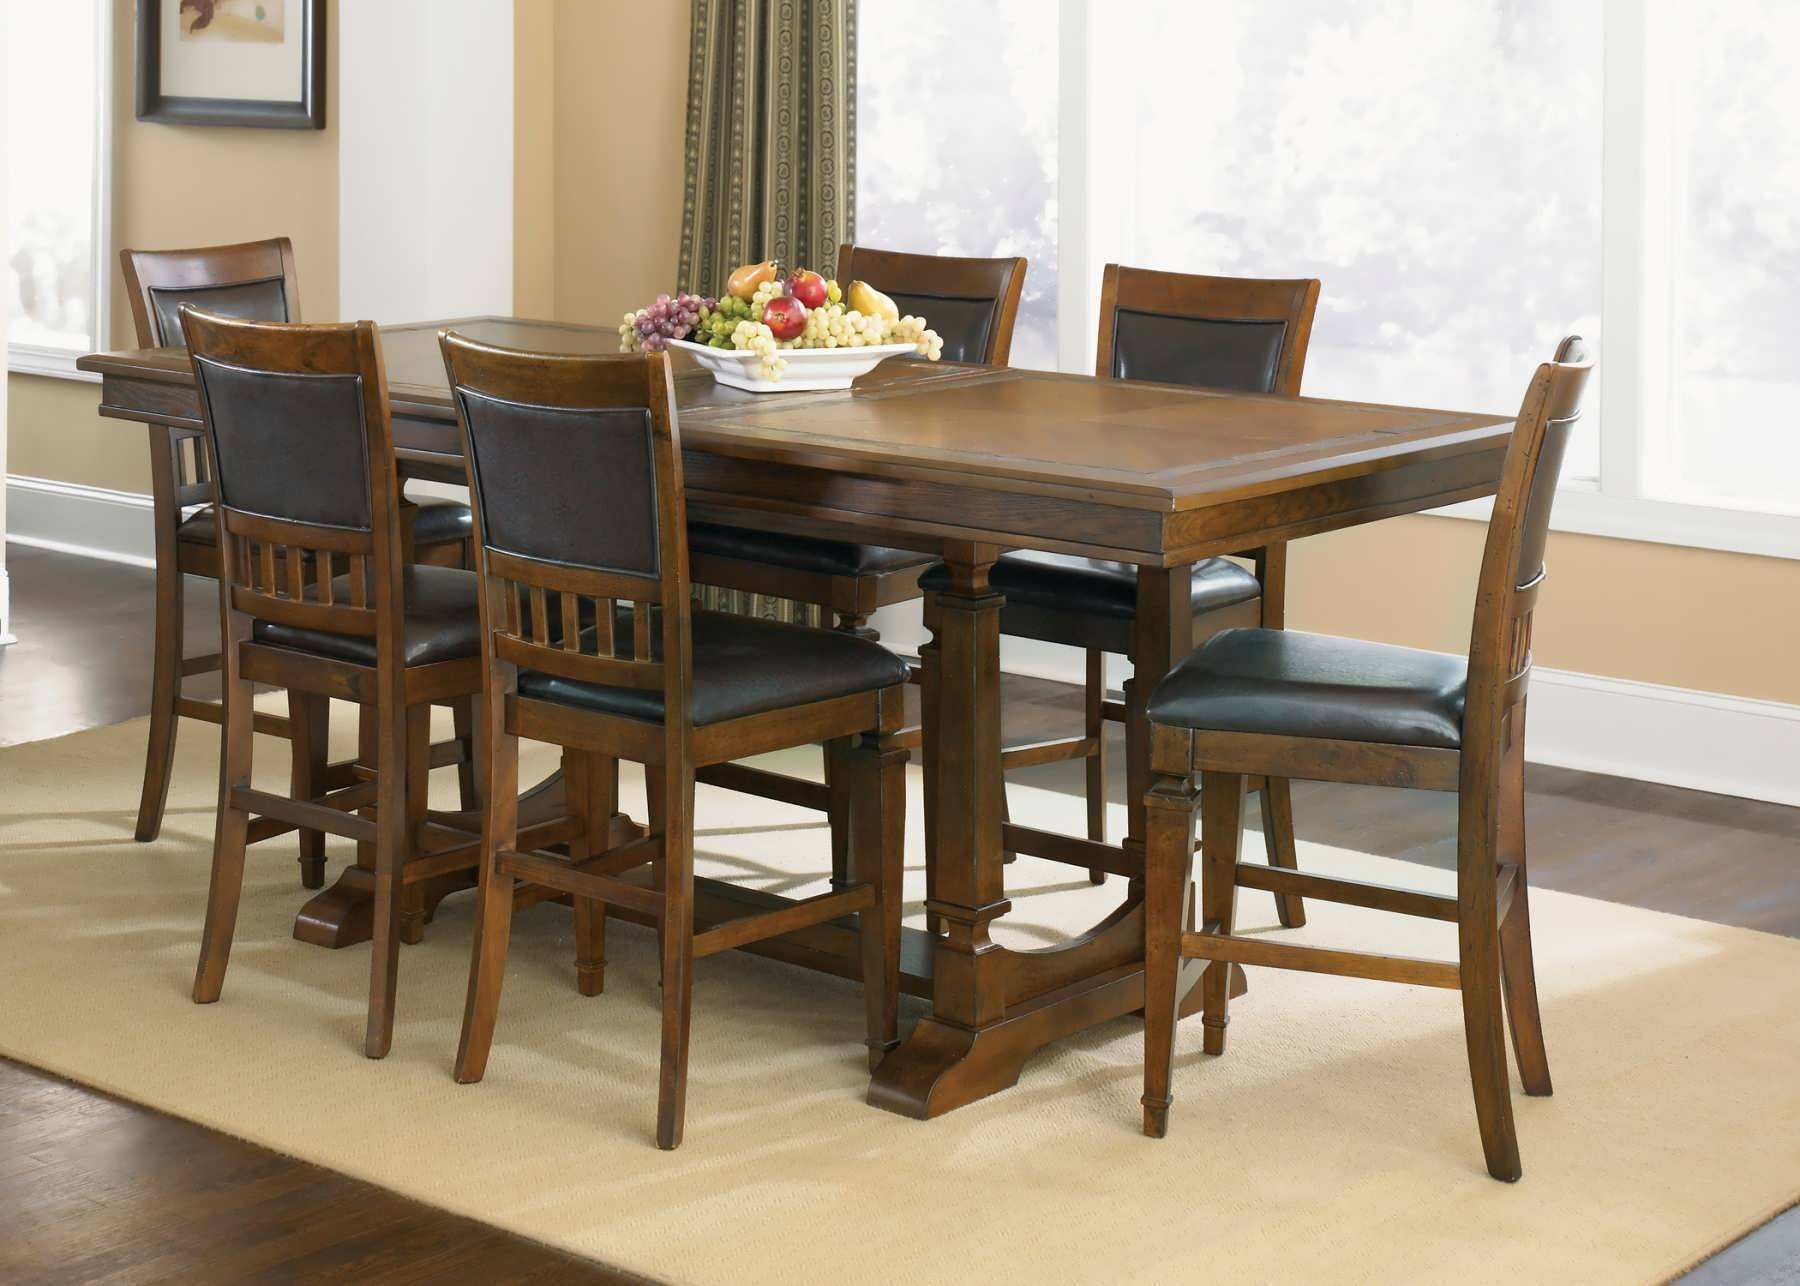 Dining room tables and chairs amazon versus dining room tables and chairs for sale compared with